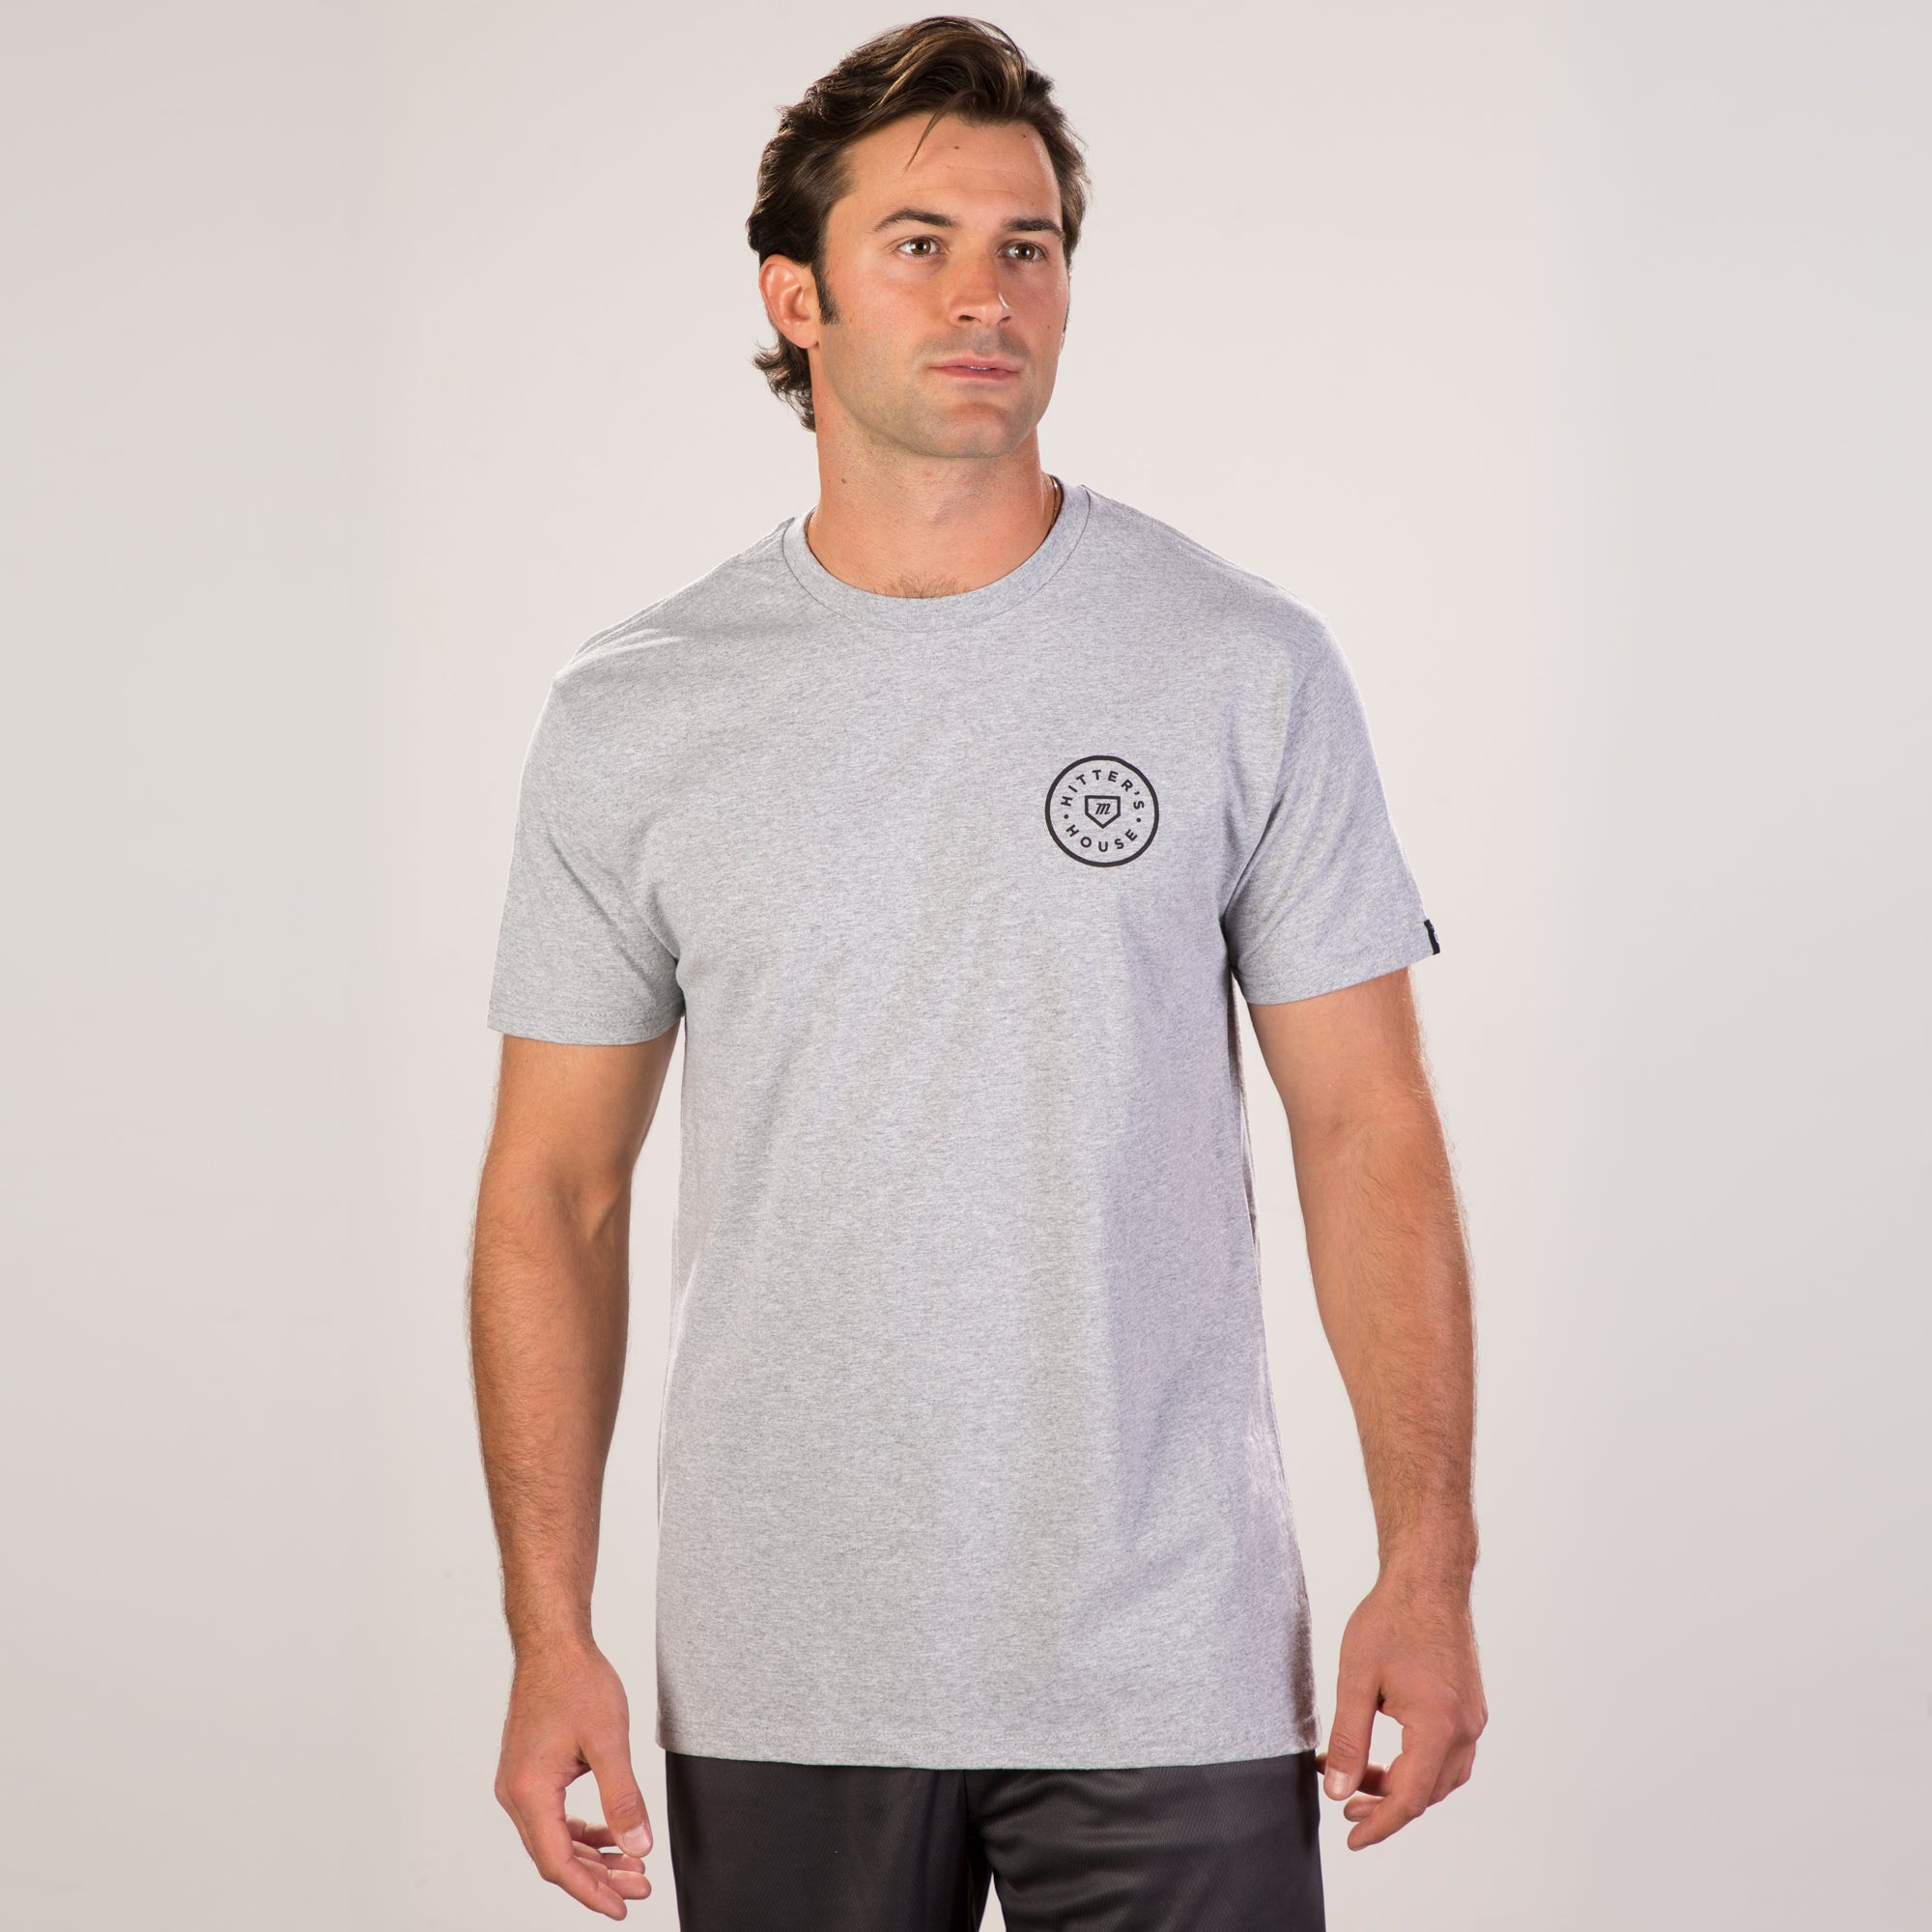 Ball Tee - Heather Grey